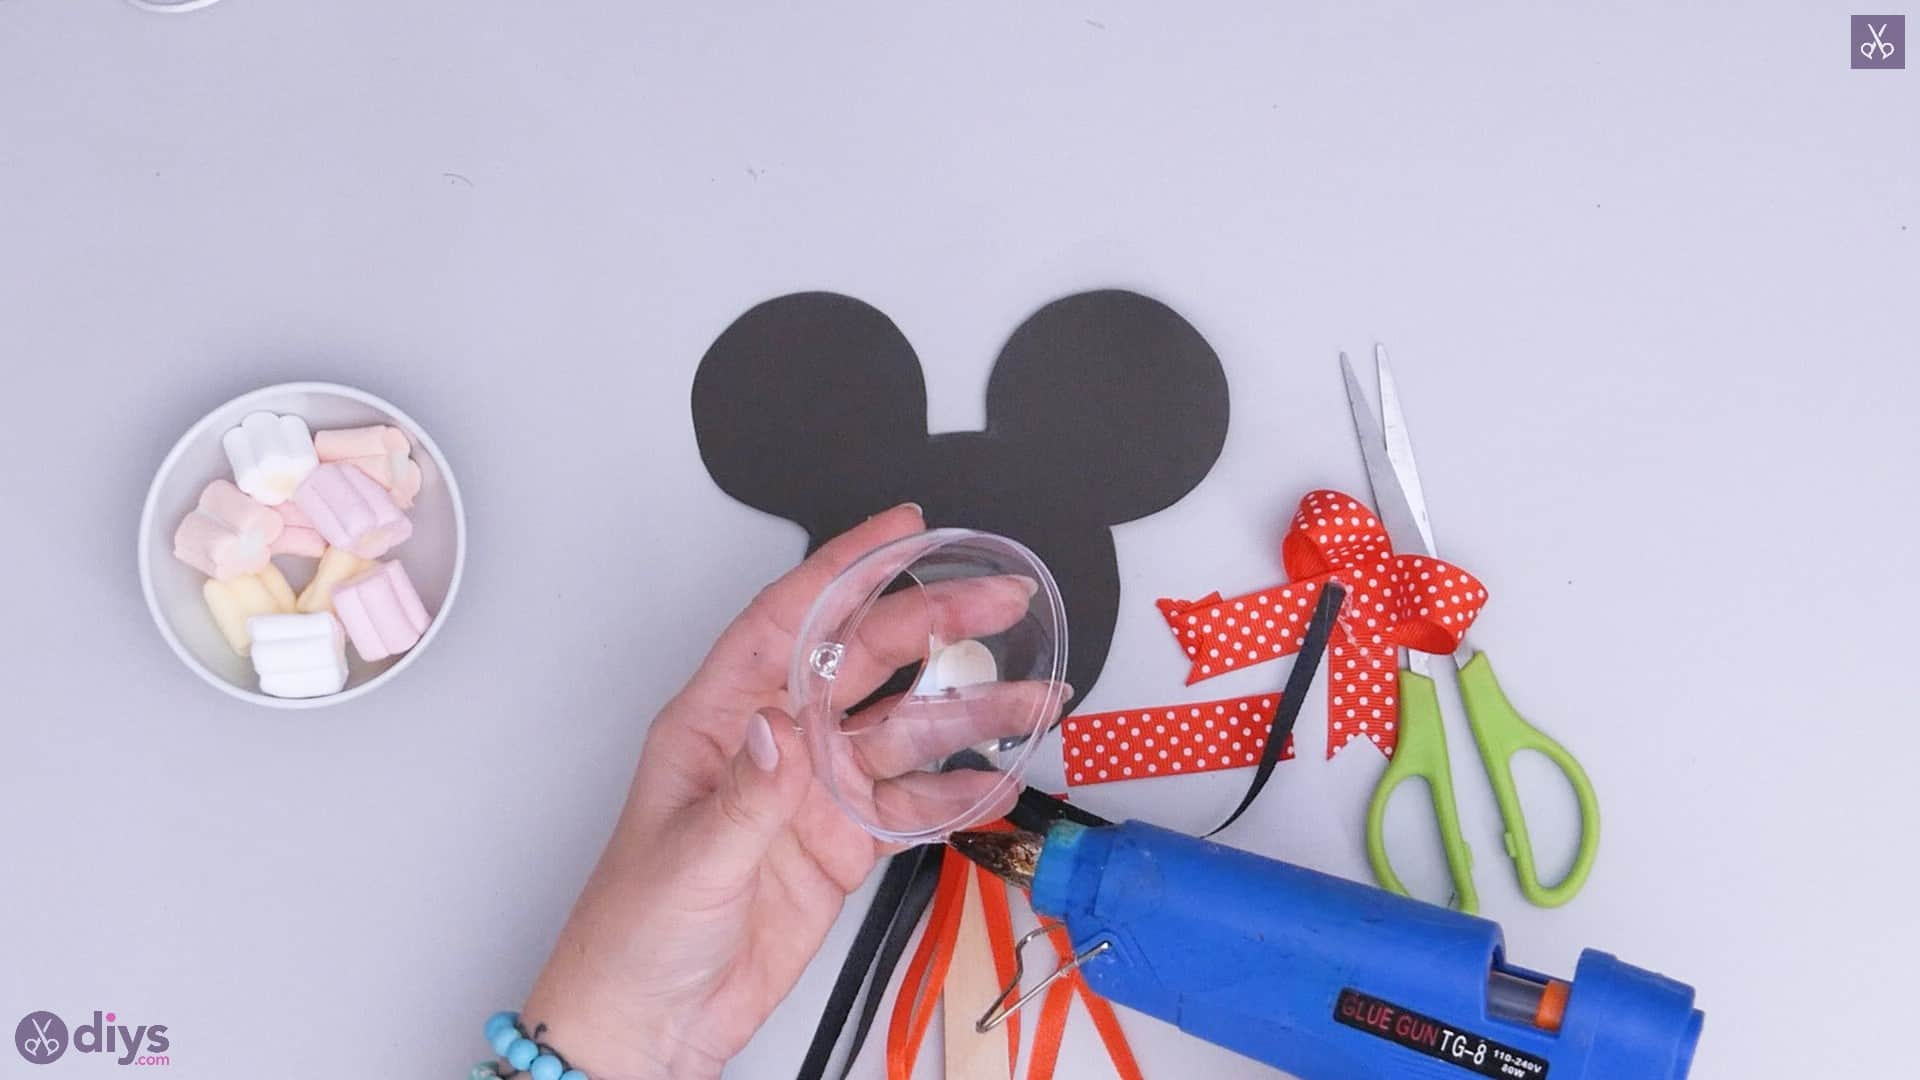 Diy minnie mouse candy holder step 6a